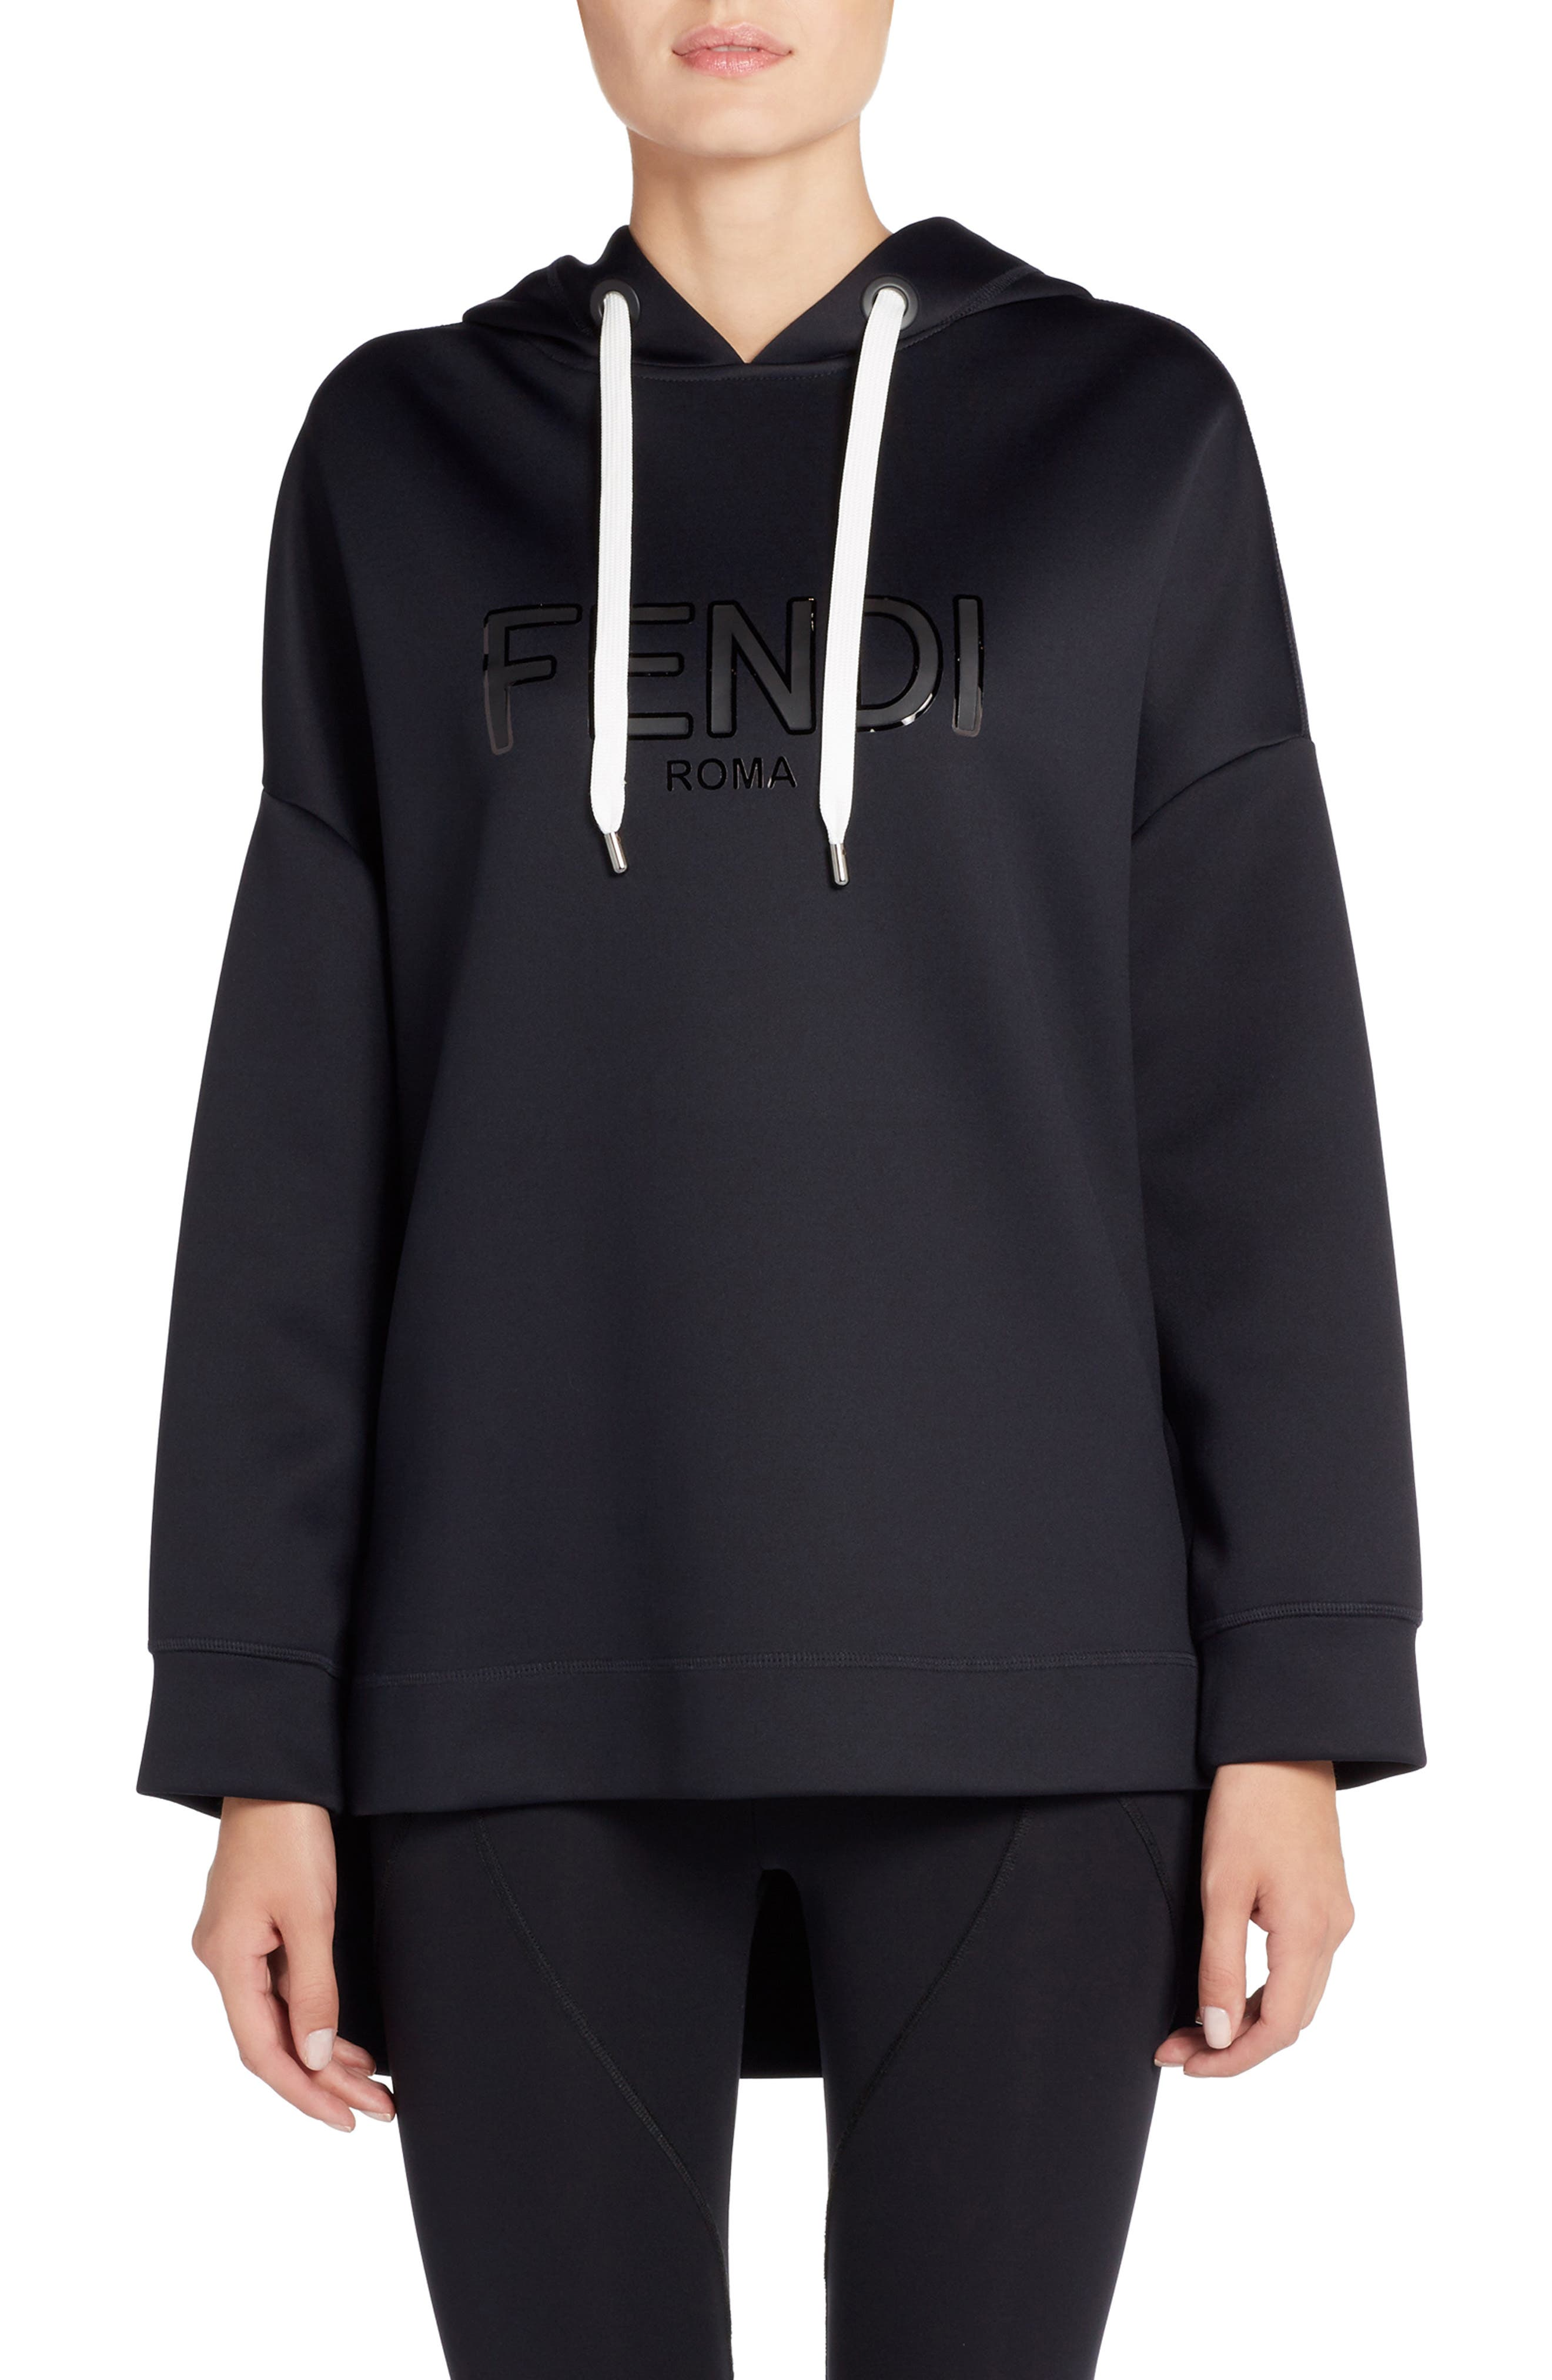 Roma Jersey Hoodie,                         Main,                         color, Black